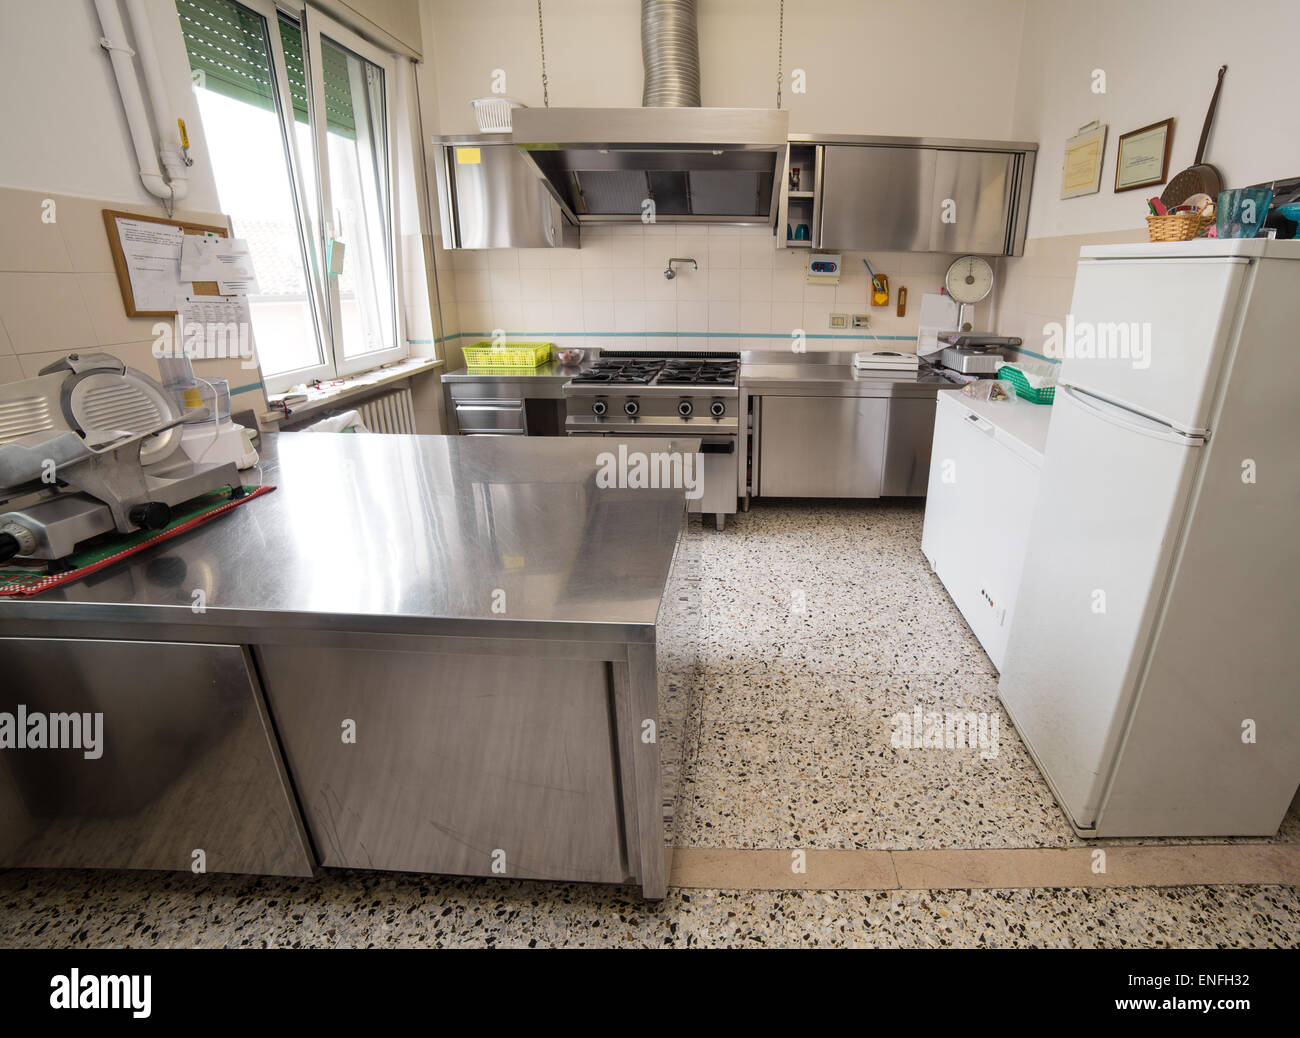 kitchen stainless steel industry with large gas stove and an industrial meat slicer Stock Photo